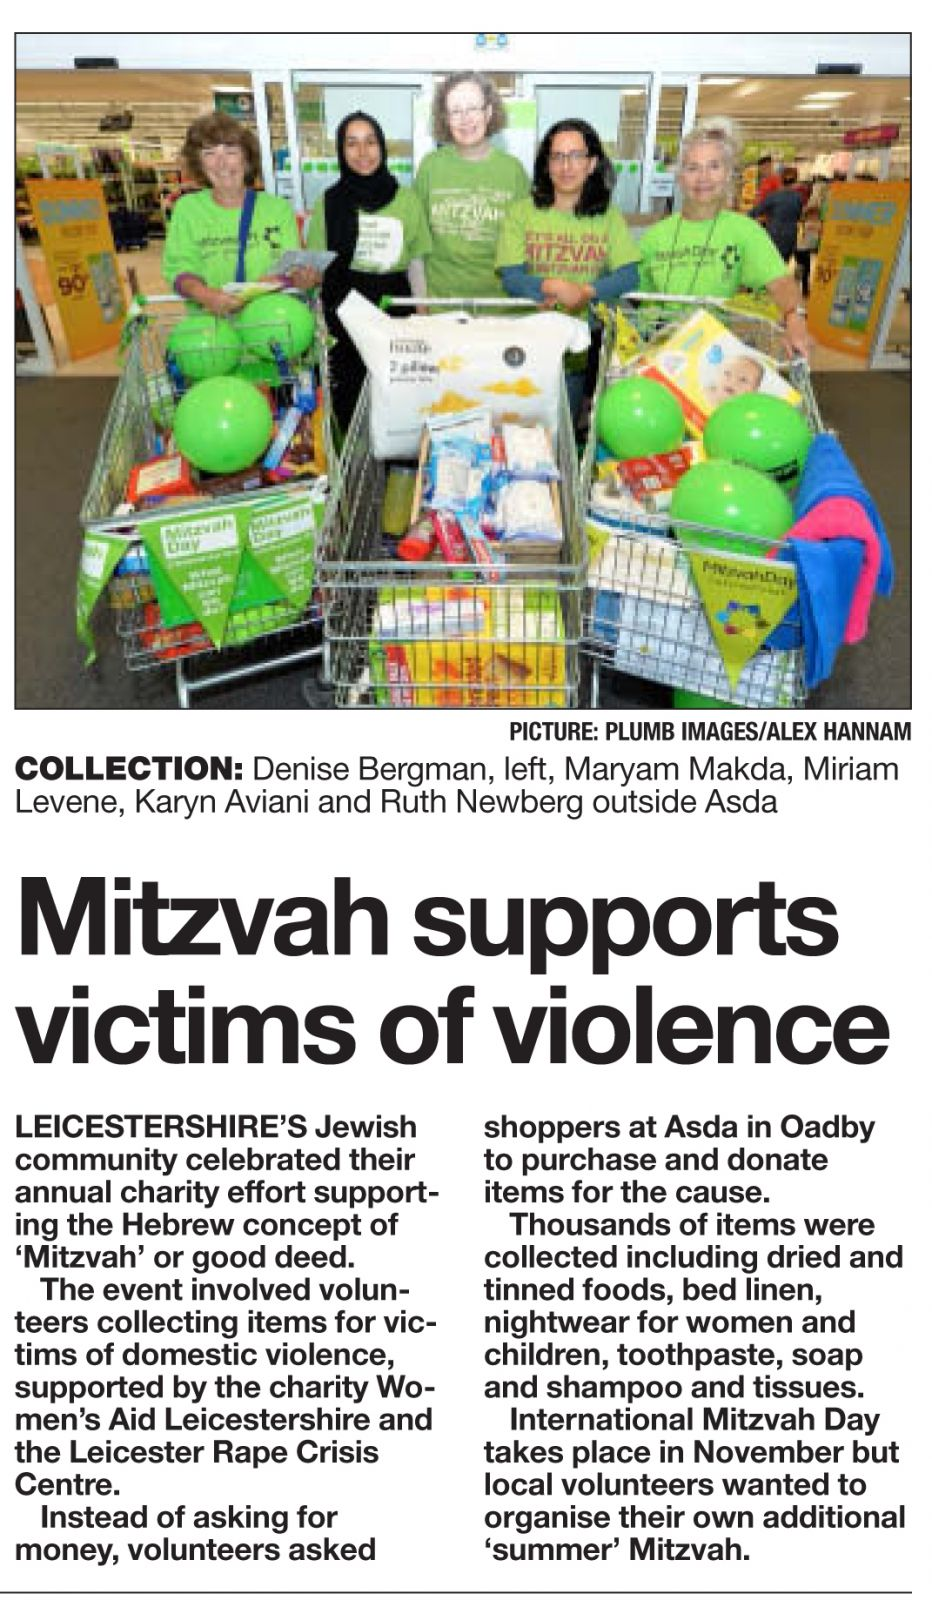 Mitzvah Day volunteers supporting domestic violence victims, covered by Leicester Mercury